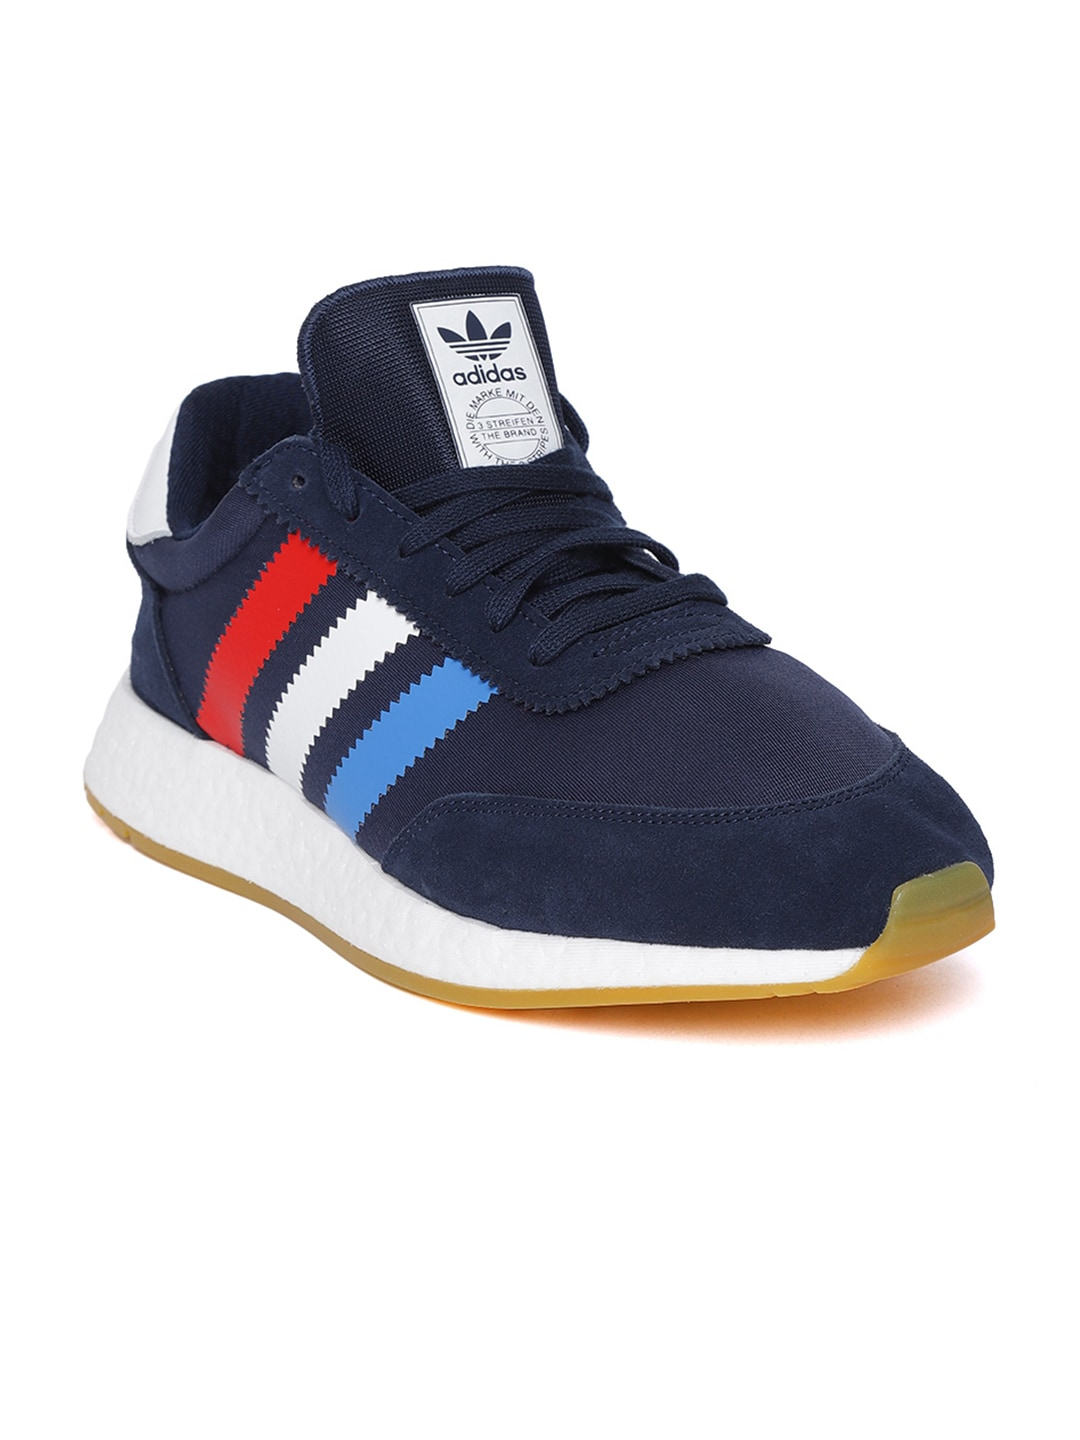 buy popular 1ce6b 0ca62 Adidas Shoes - Buy Adidas Shoes for Men   Women Online - Myntra